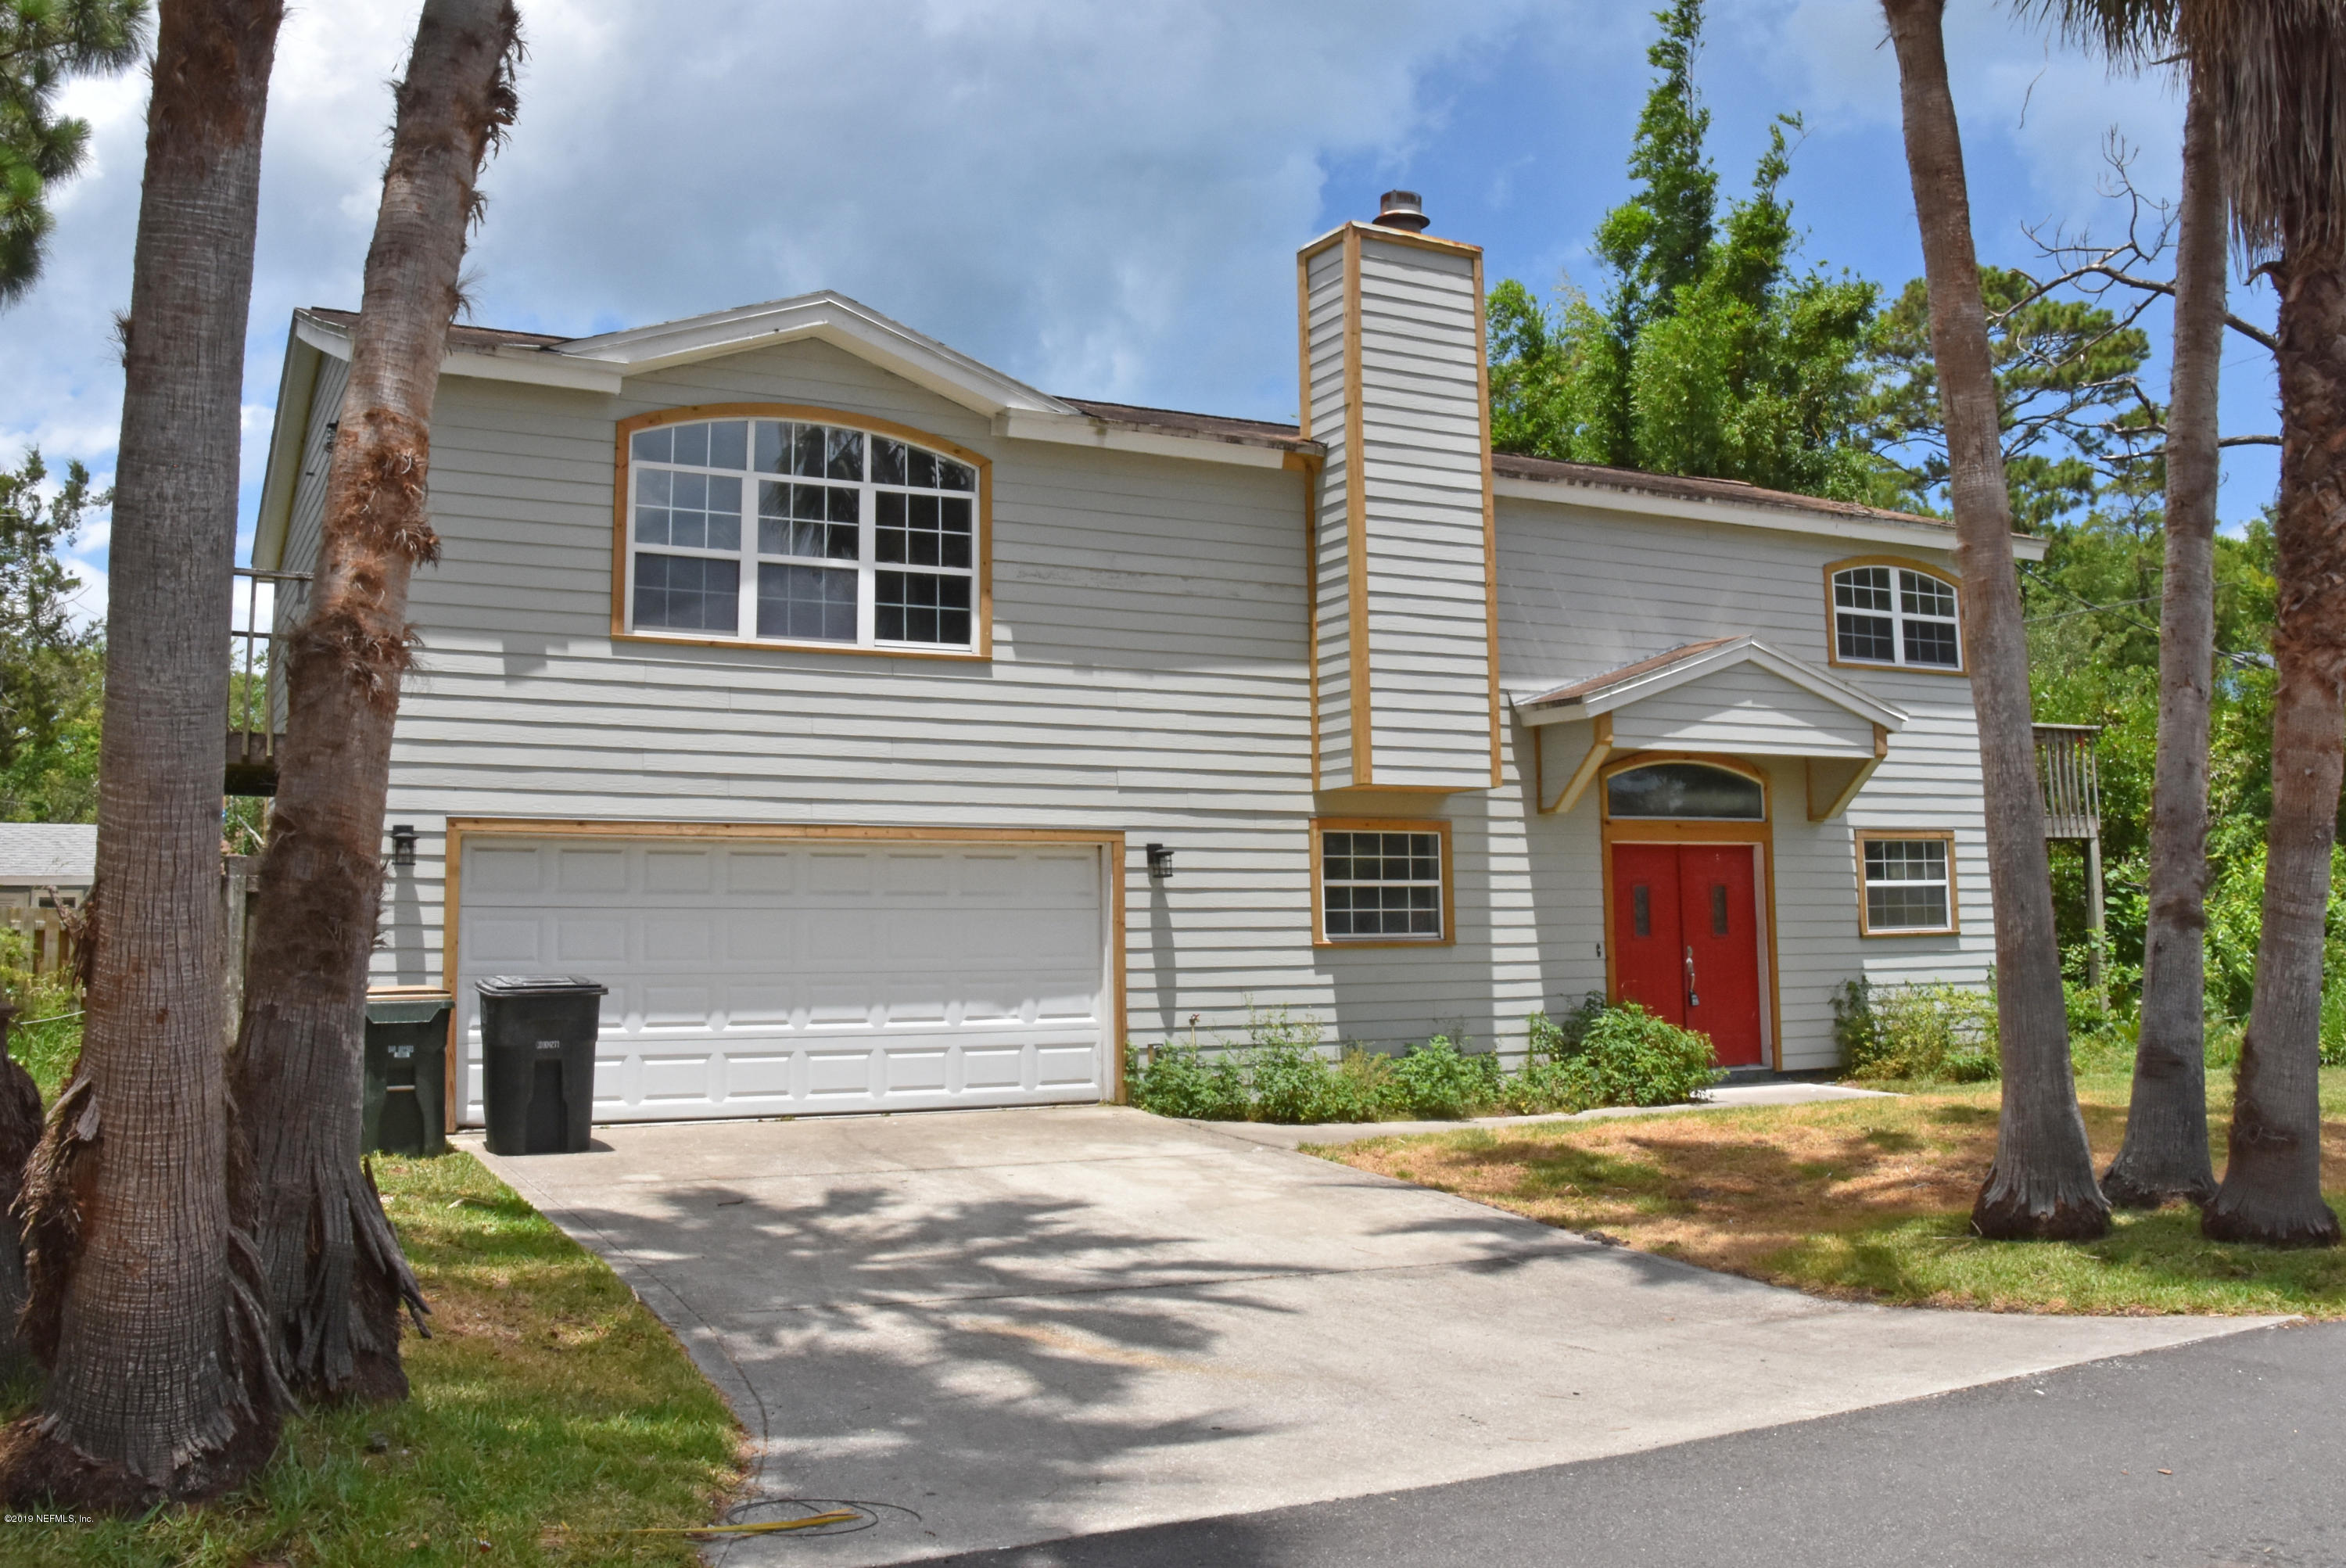 302 MAGNOLIA ST, ATLANTIC BEACH, FLORIDA